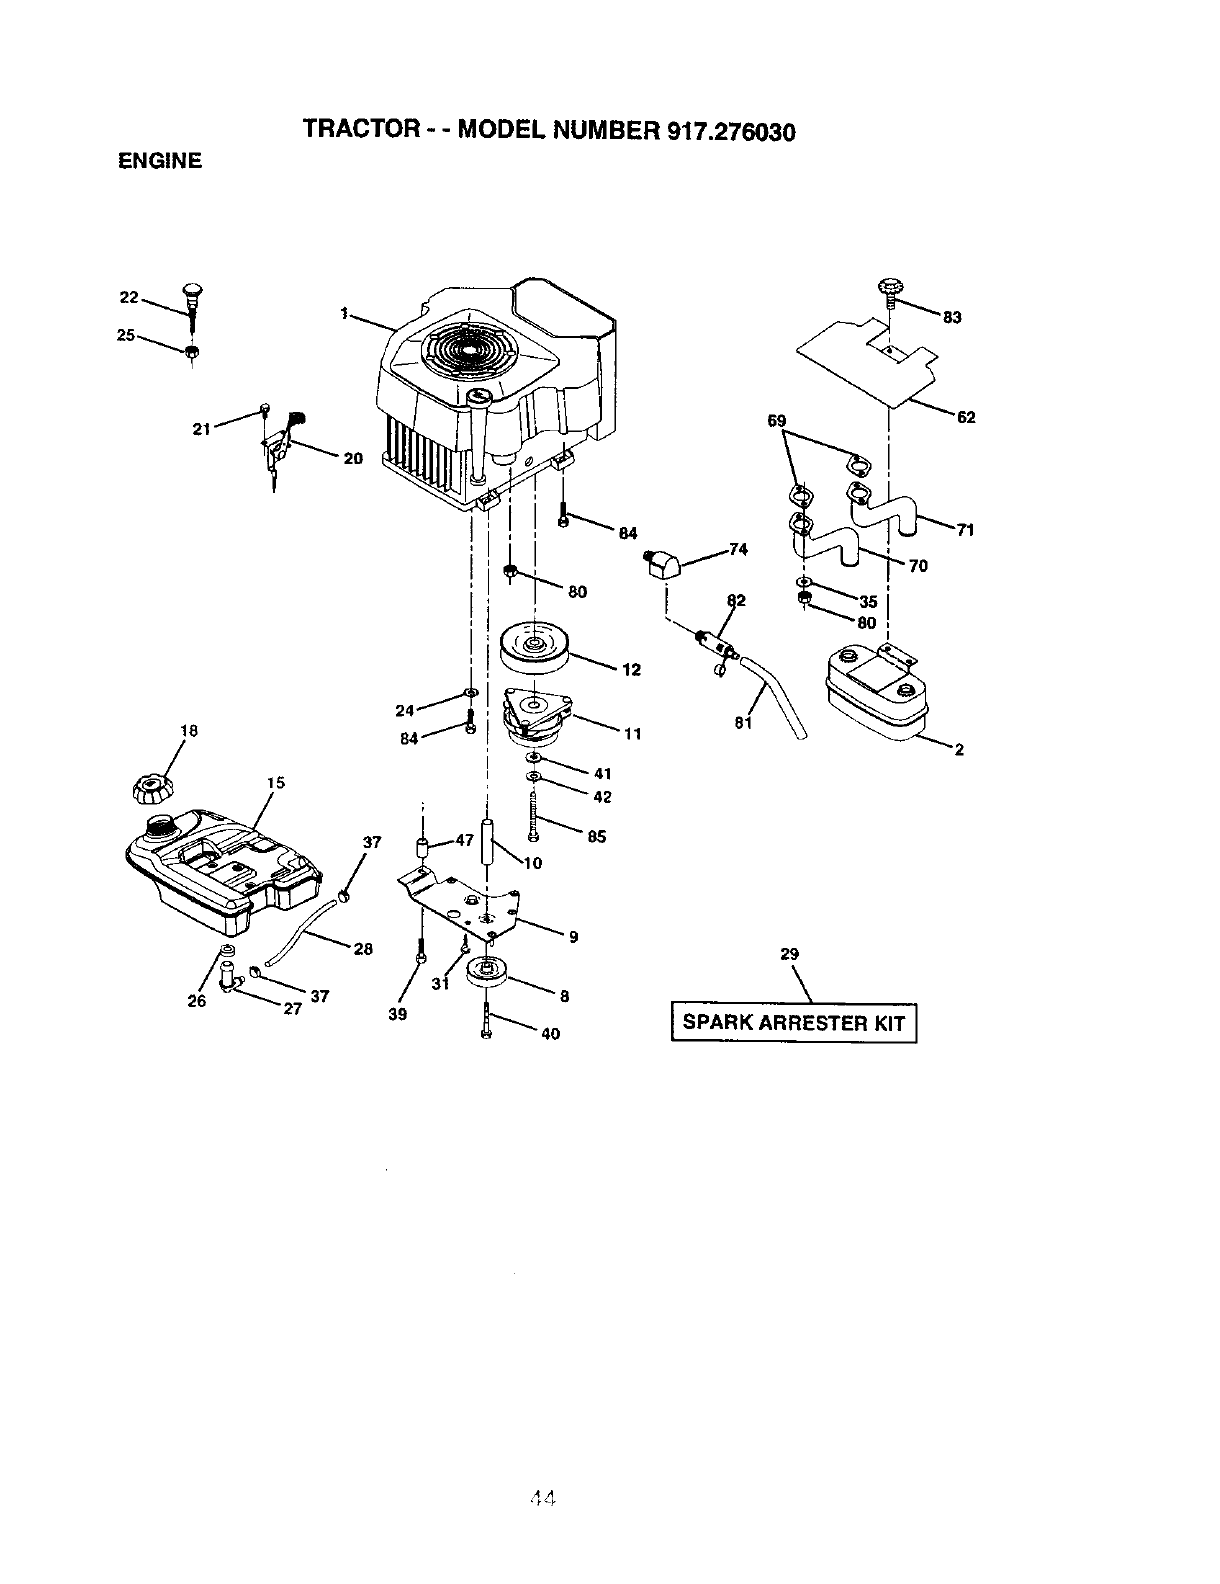 Page 44 of Craftsman Lawn Mower 917.27603 User Guide